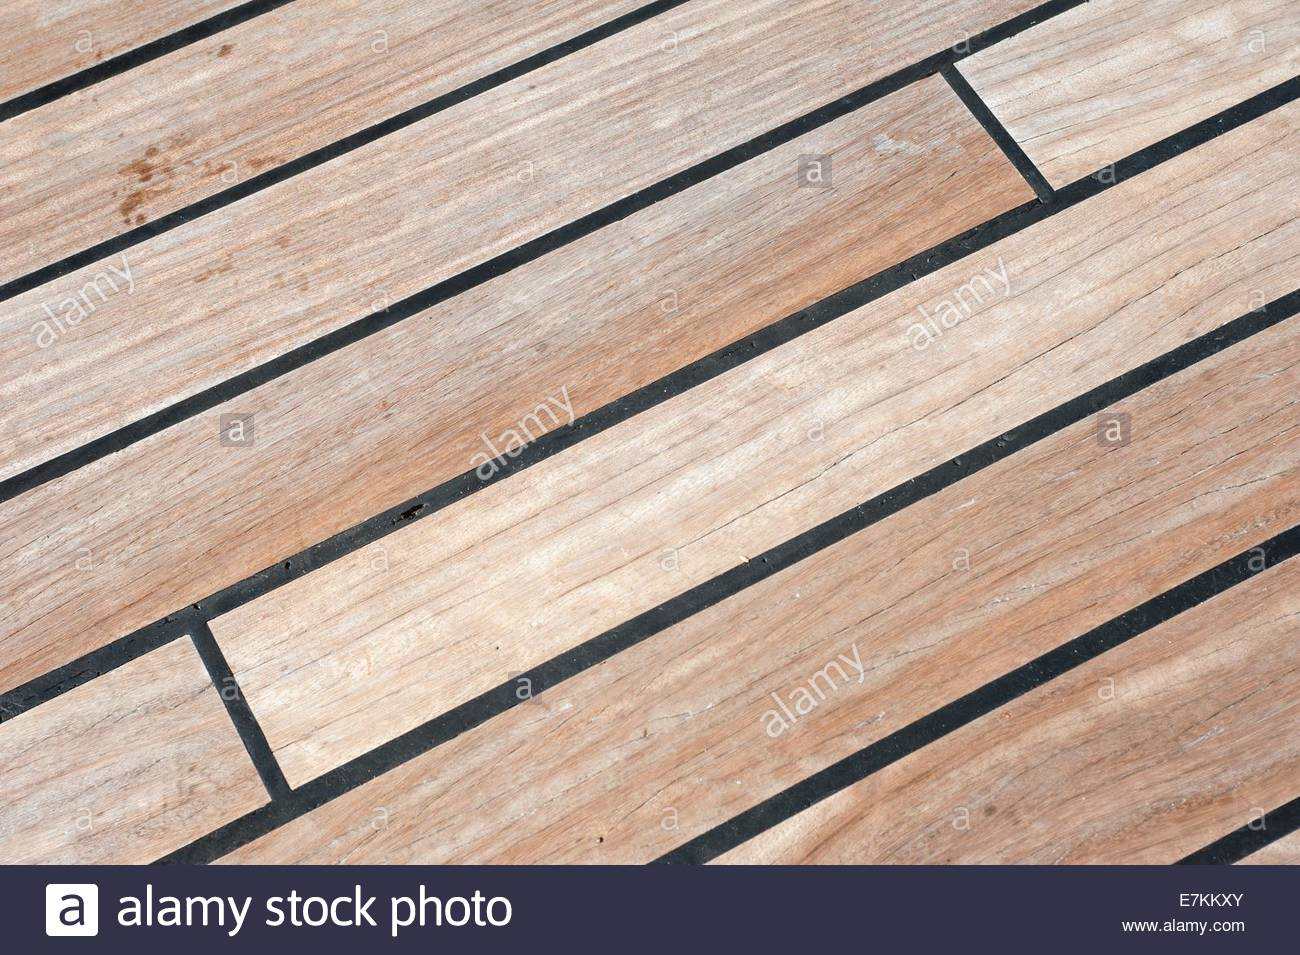 Wooden decking on a ship. - Stock Image